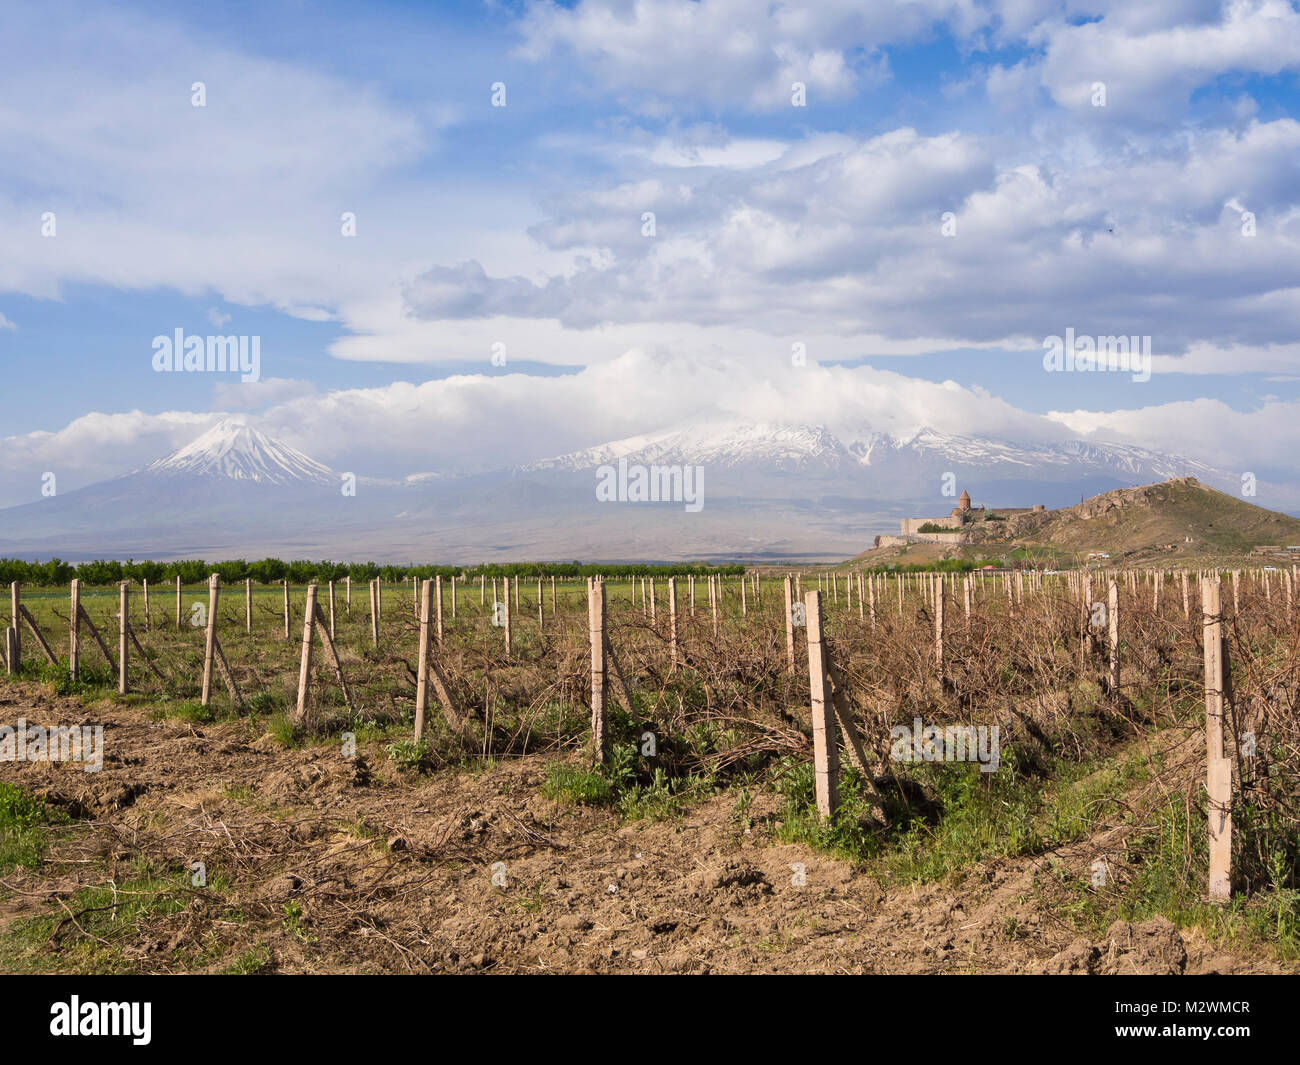 The Khor Virap monastery in Armenia and vineyards, with Ararat mountain behind, a popular and picturesque tourist - Stock Image